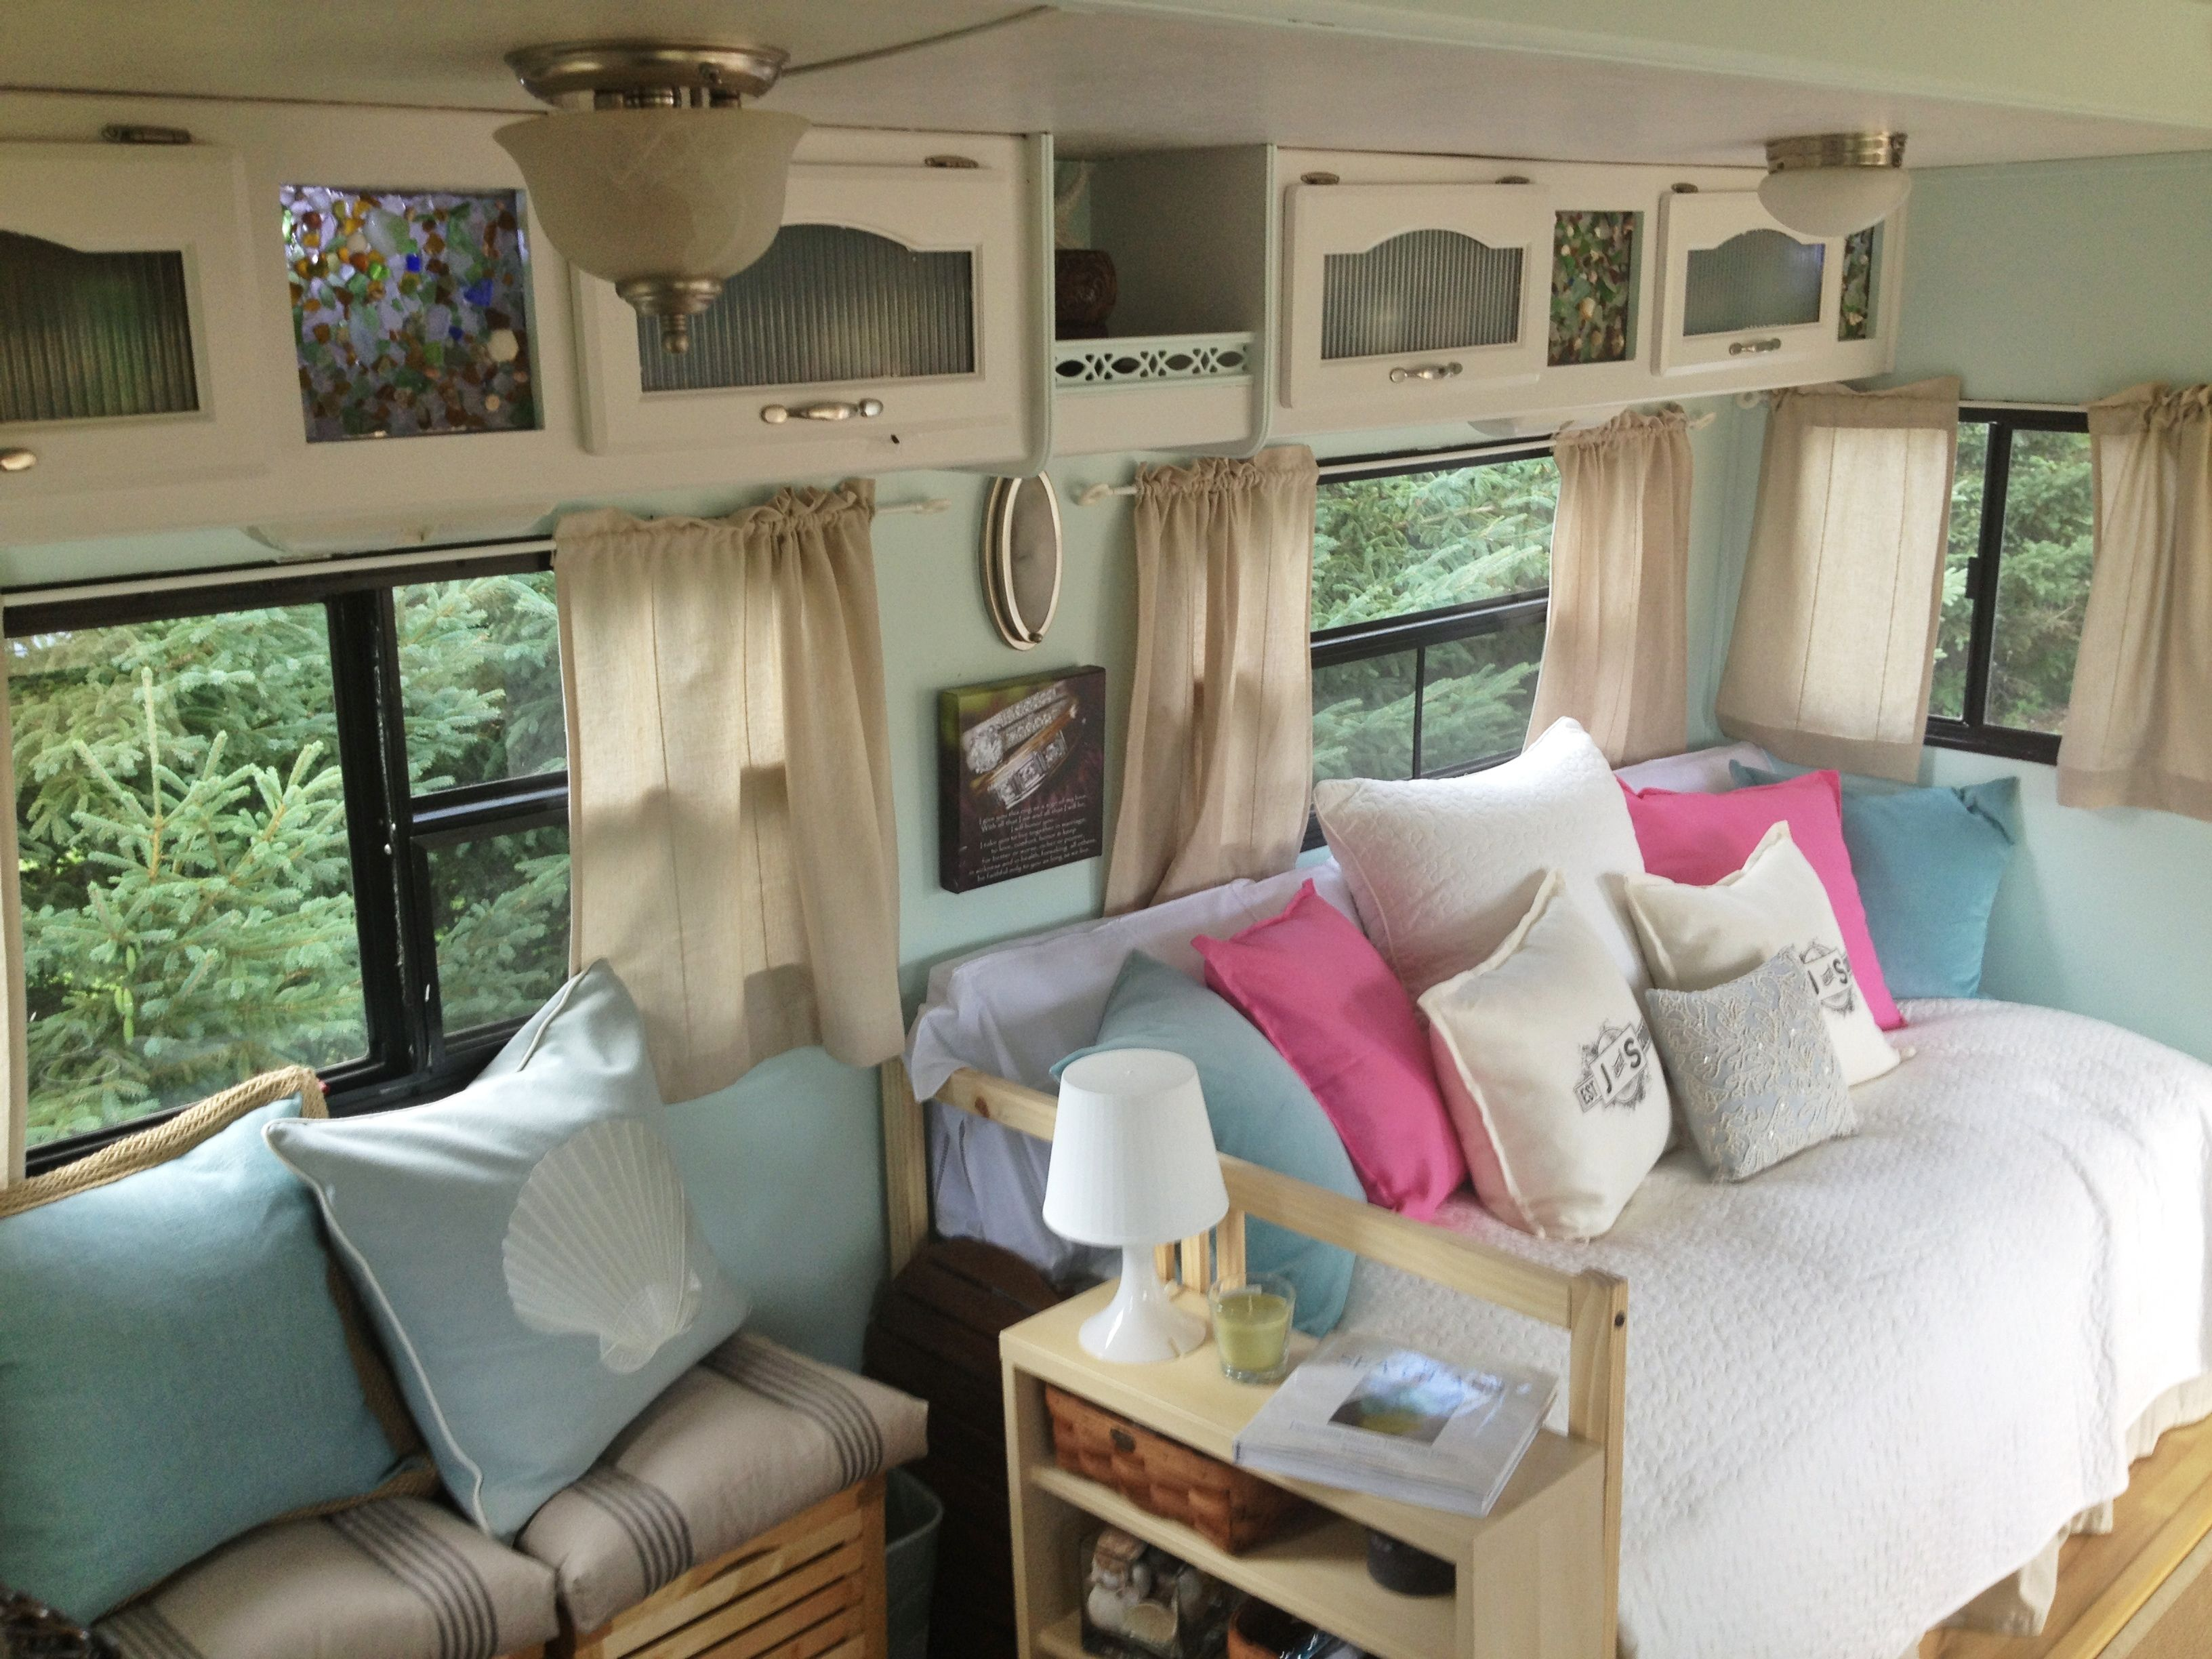 Modern rv interiors - I Absolutely Love This Remodel My Camper Will Look Like This